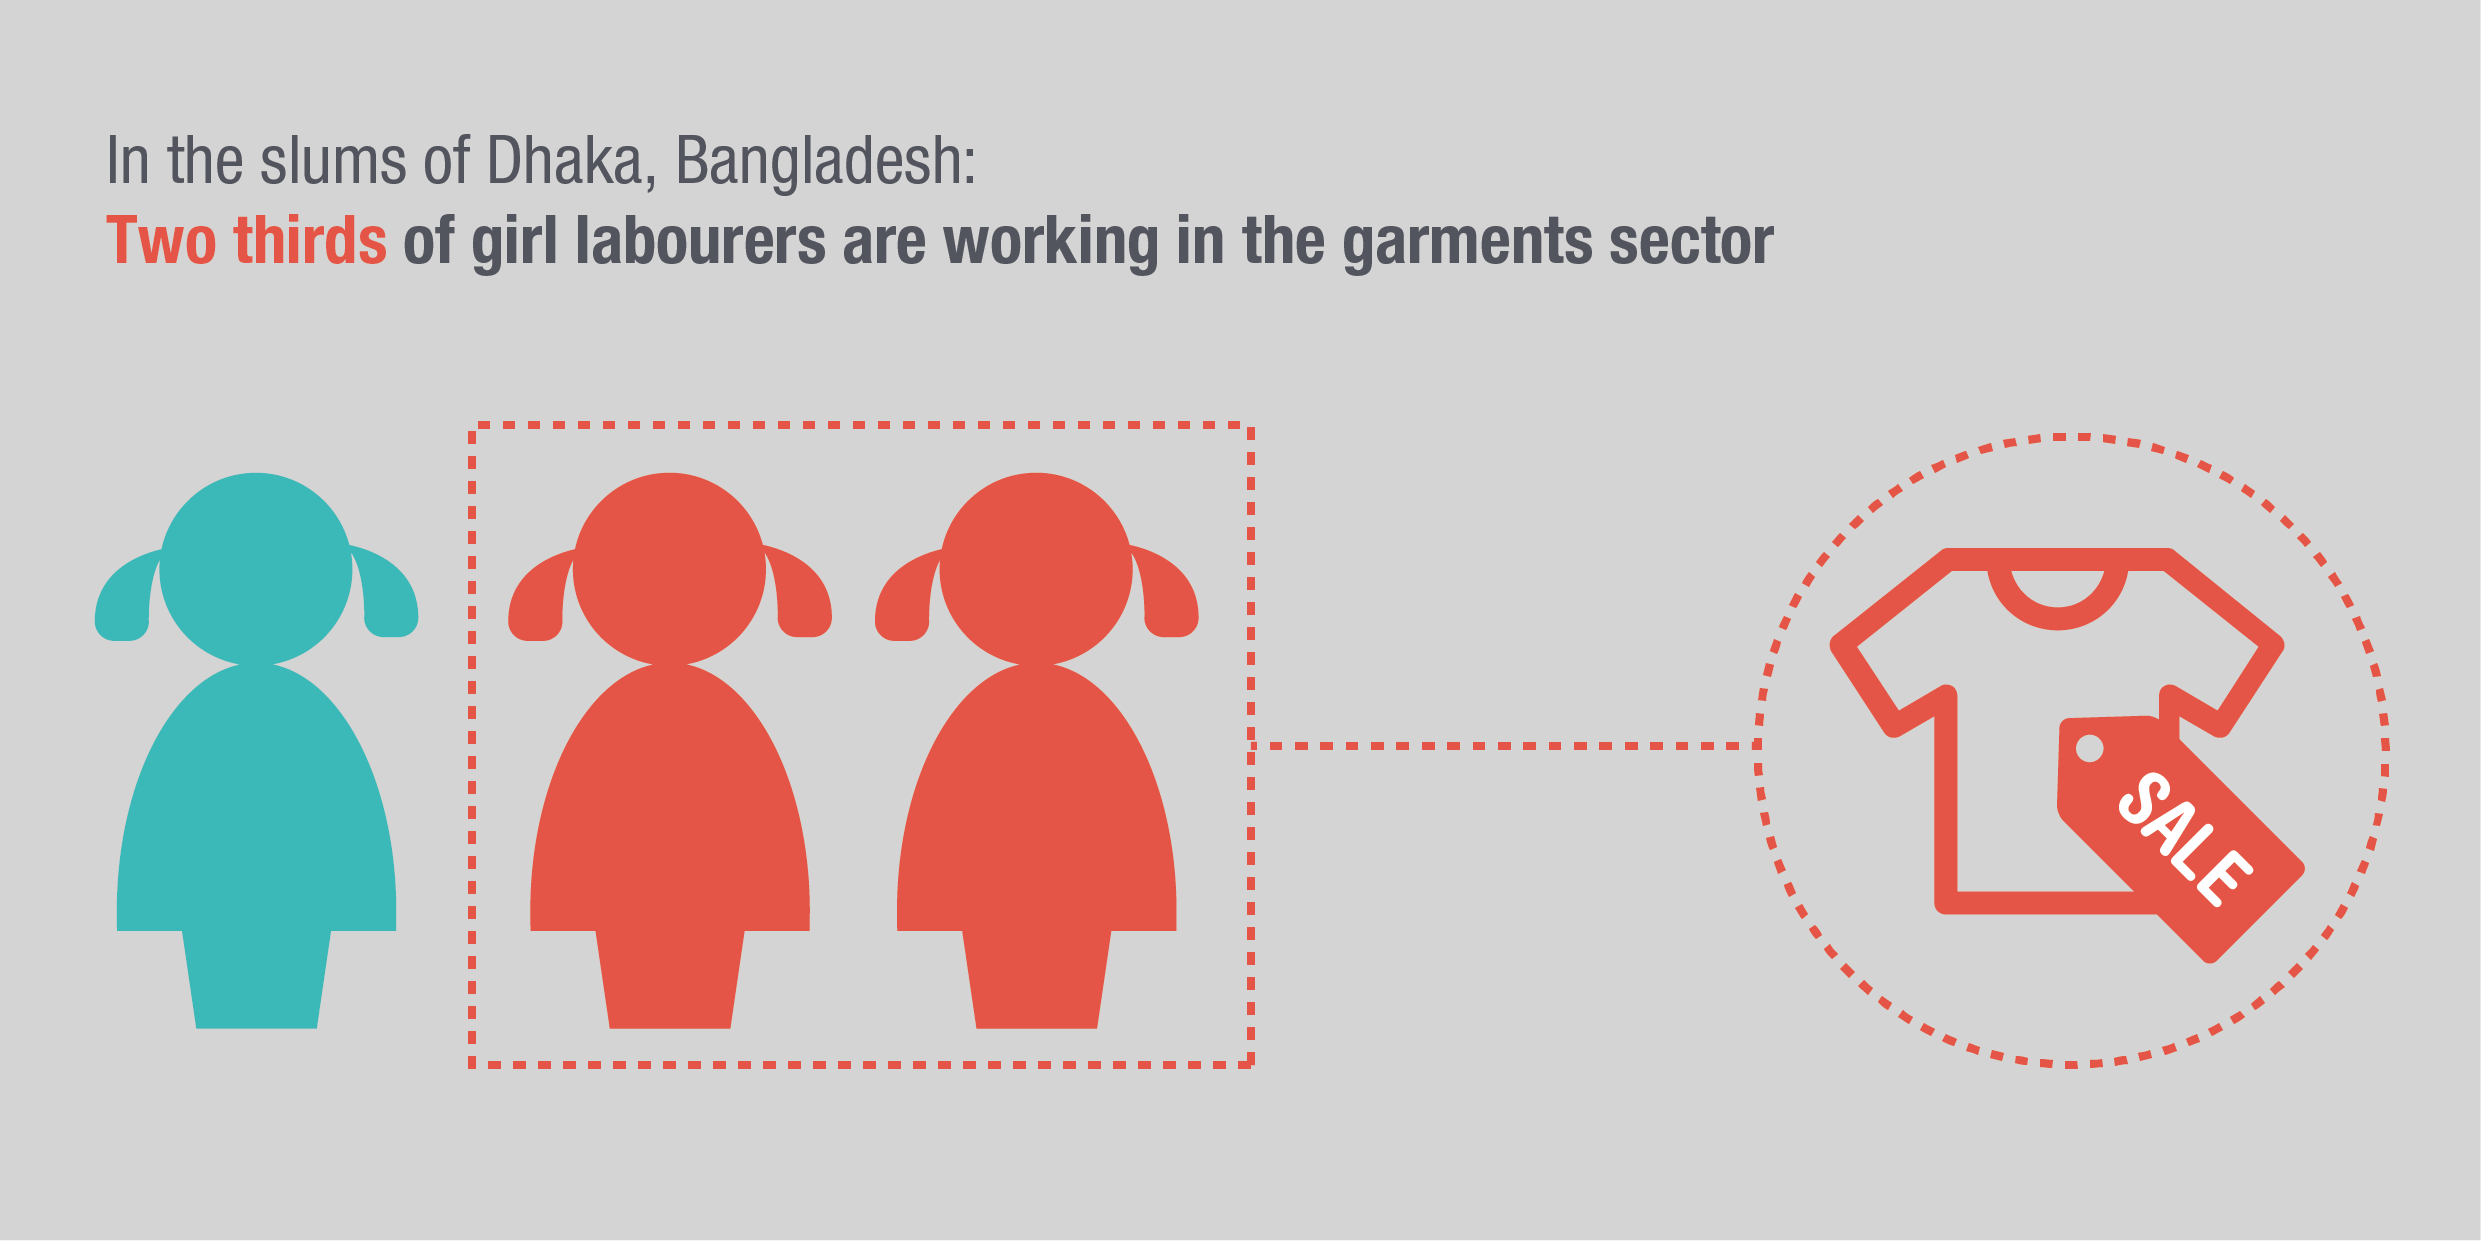 Infographic: two thirds of girl labourers in Bangladesh work in the garment industry